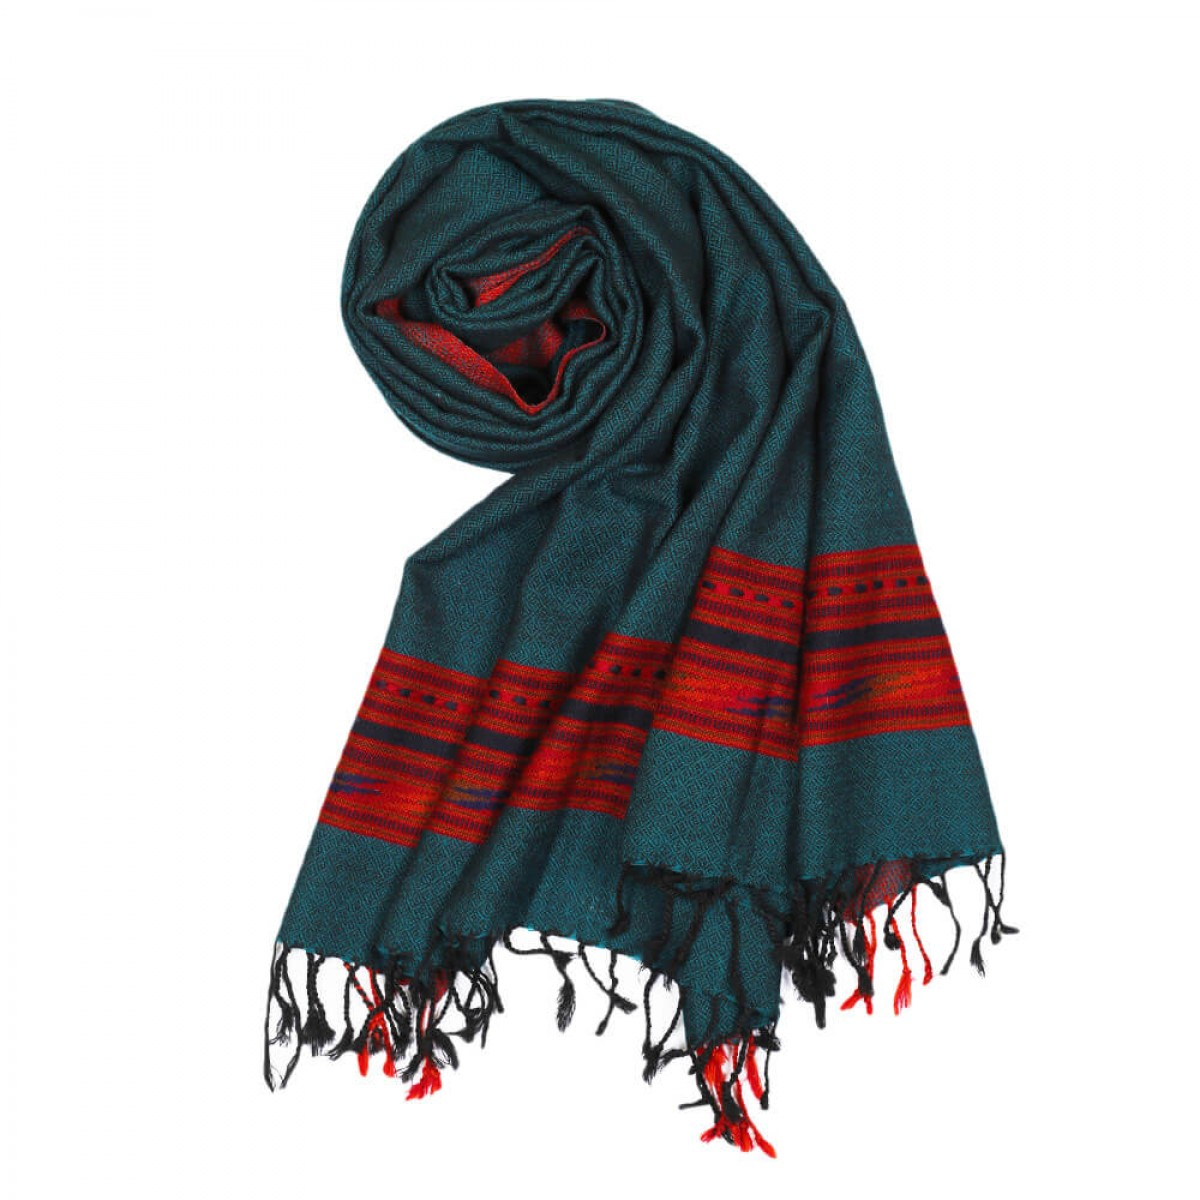 Himalayan Vibes Woolen Stole - Teal & Red